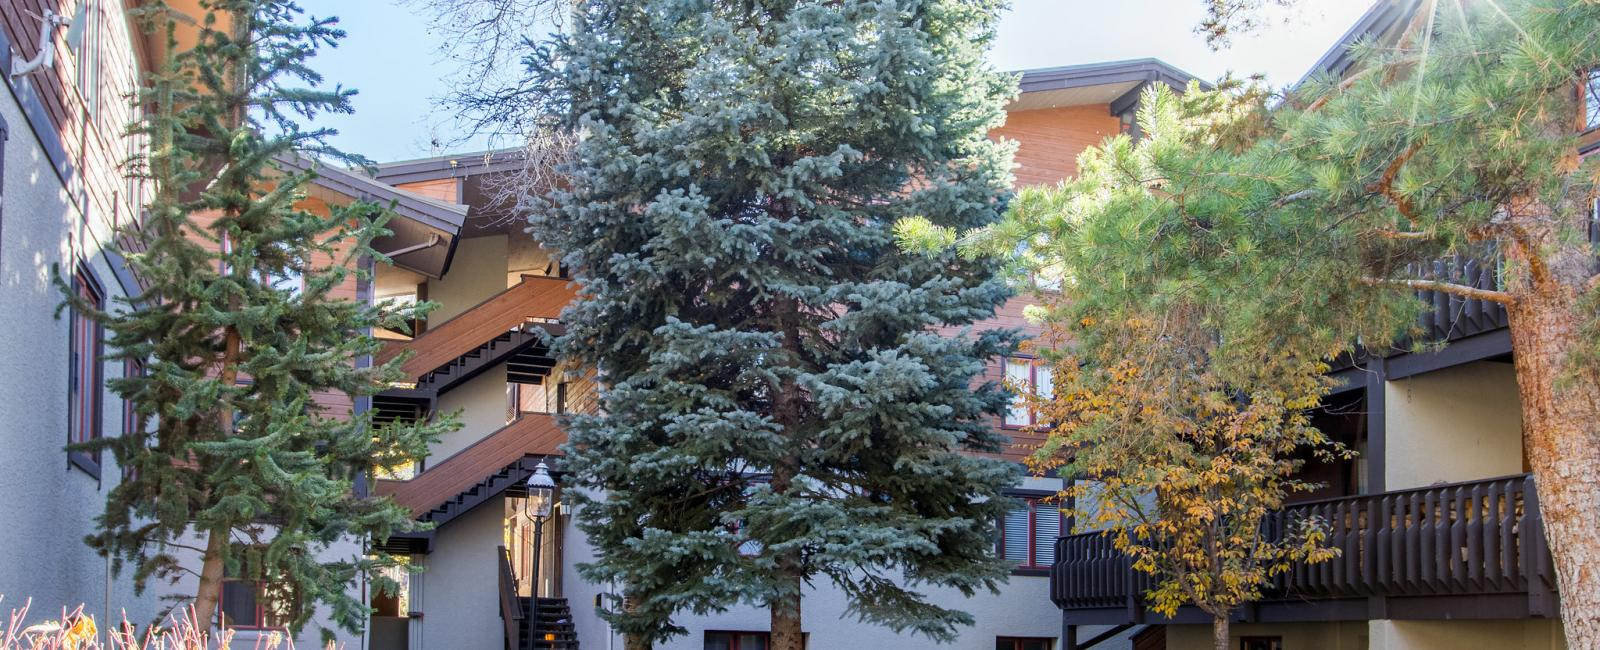 Tivoli Lodge Vail Vail Realty All Seasons All Seasons Vail Close To Children S Ski